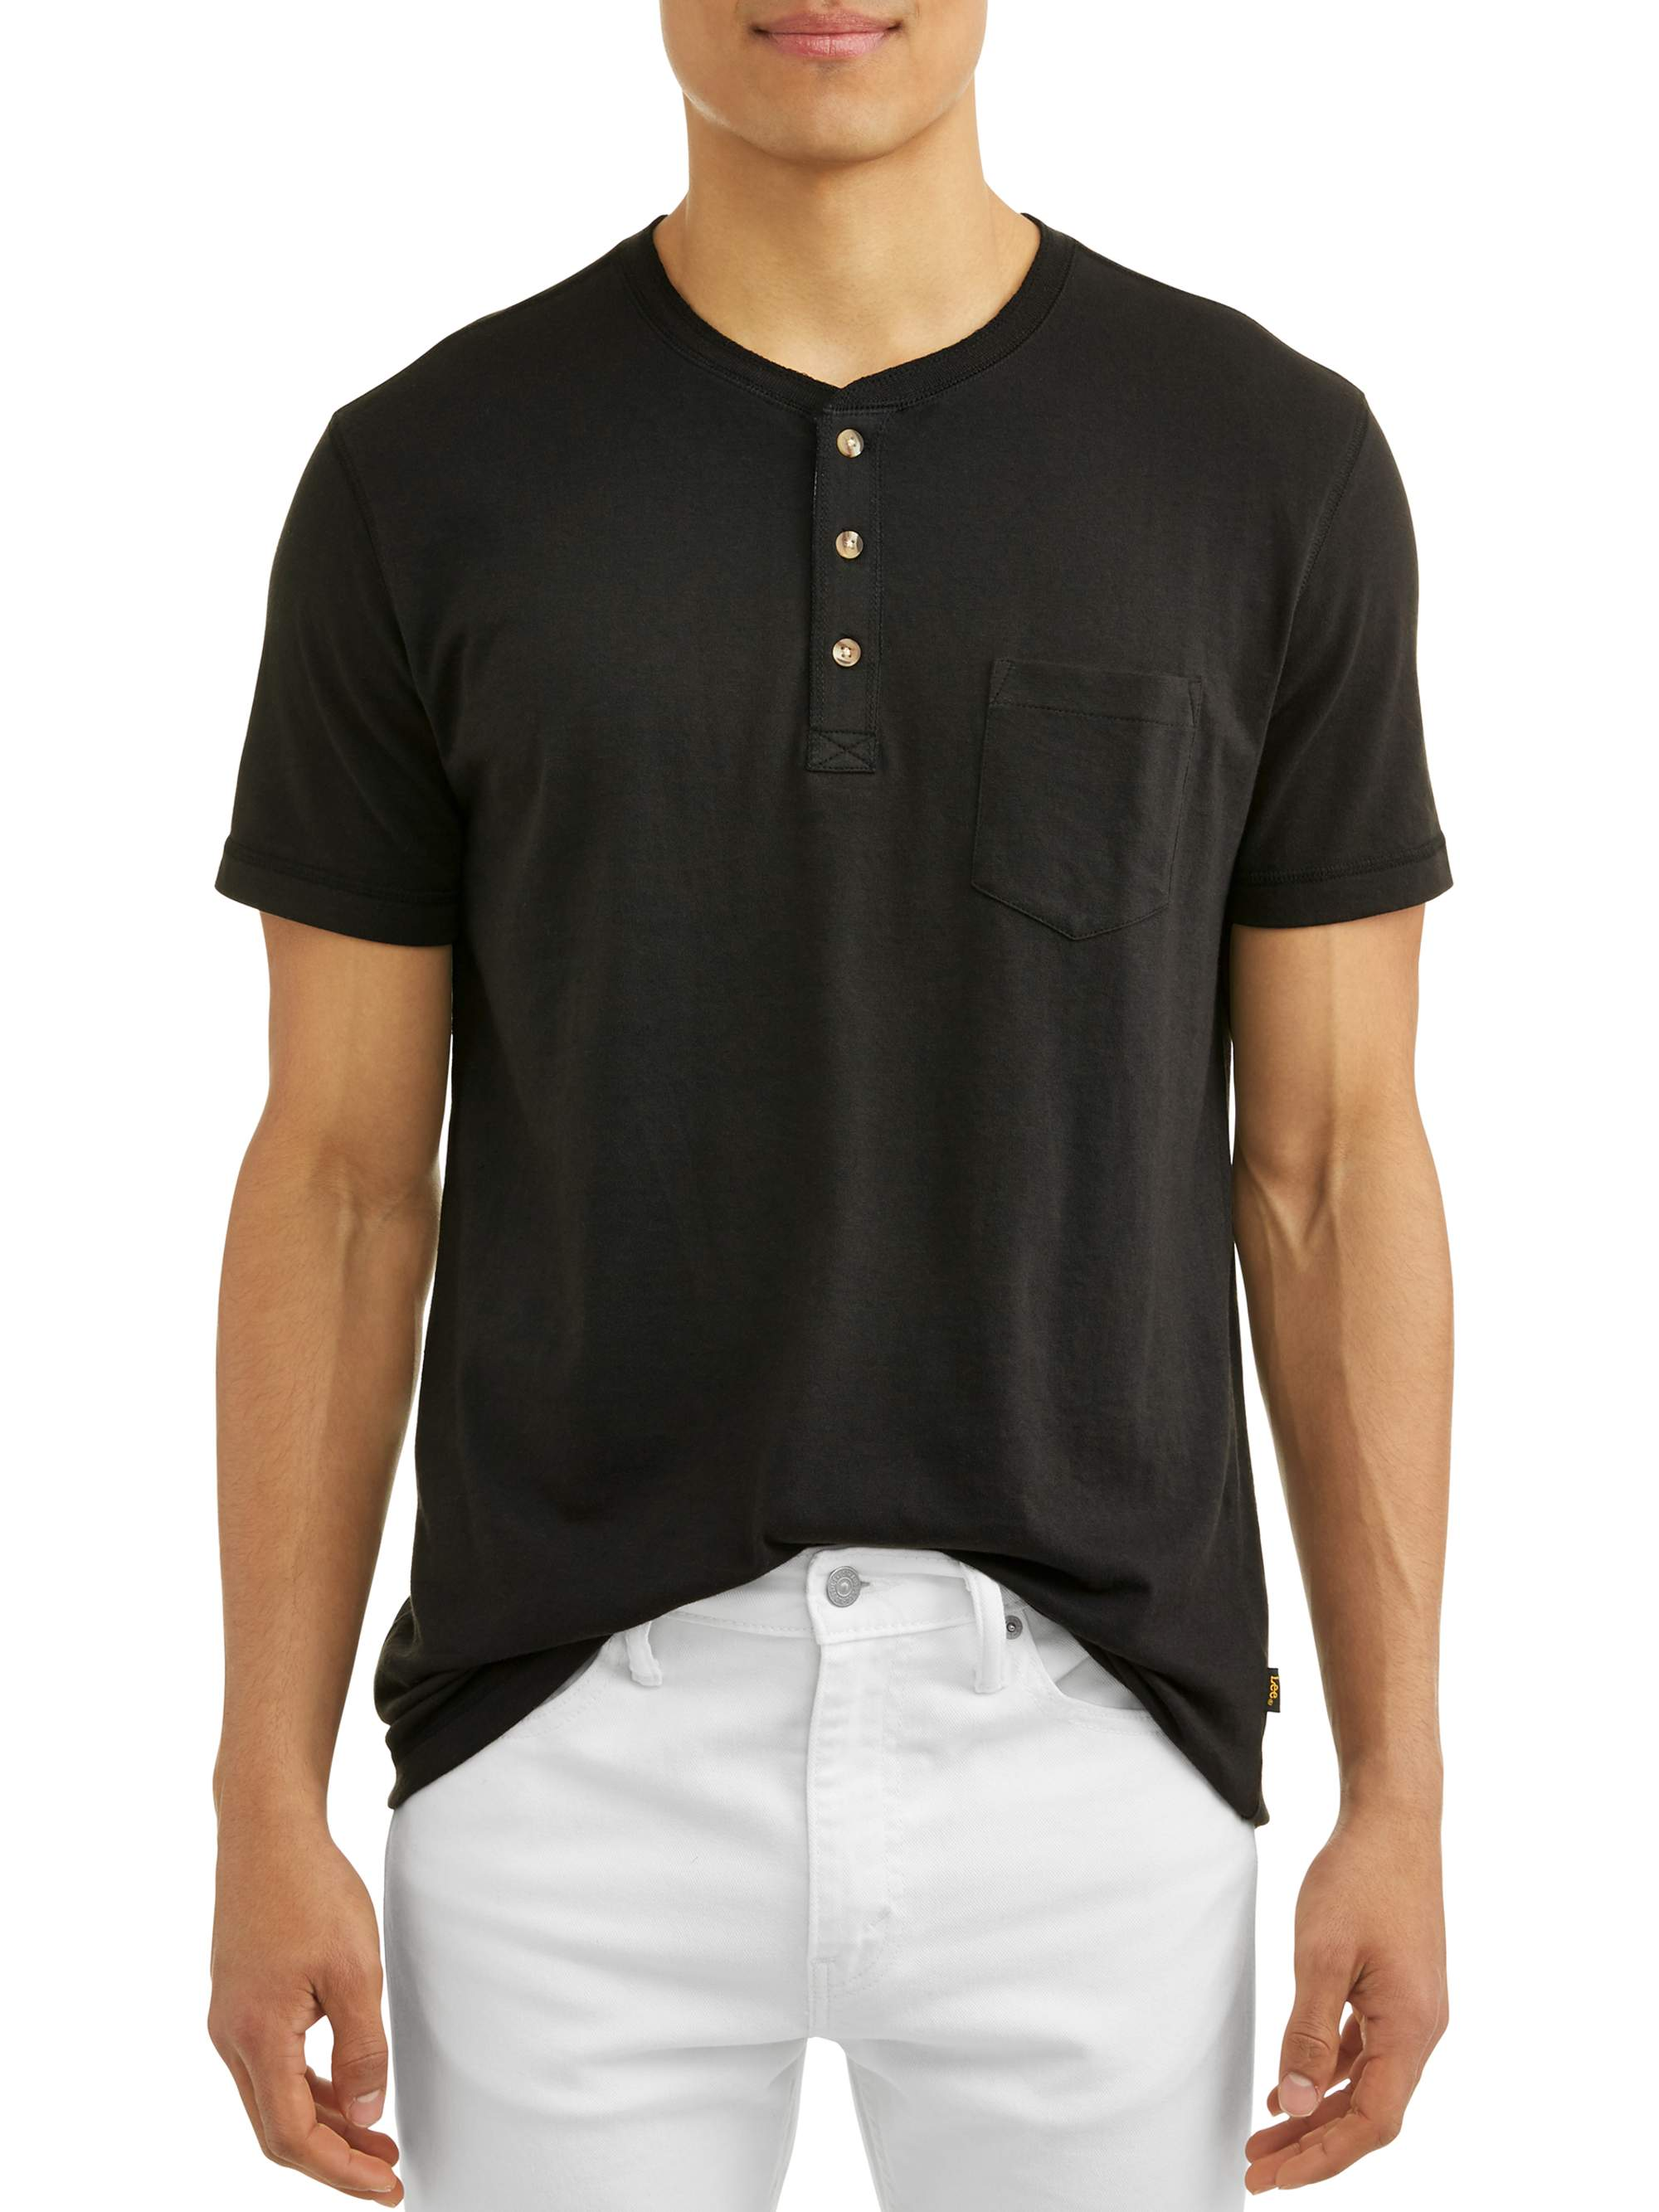 Lee Men's Short Sleeve Solid Henley, Available Up to Size 2XL